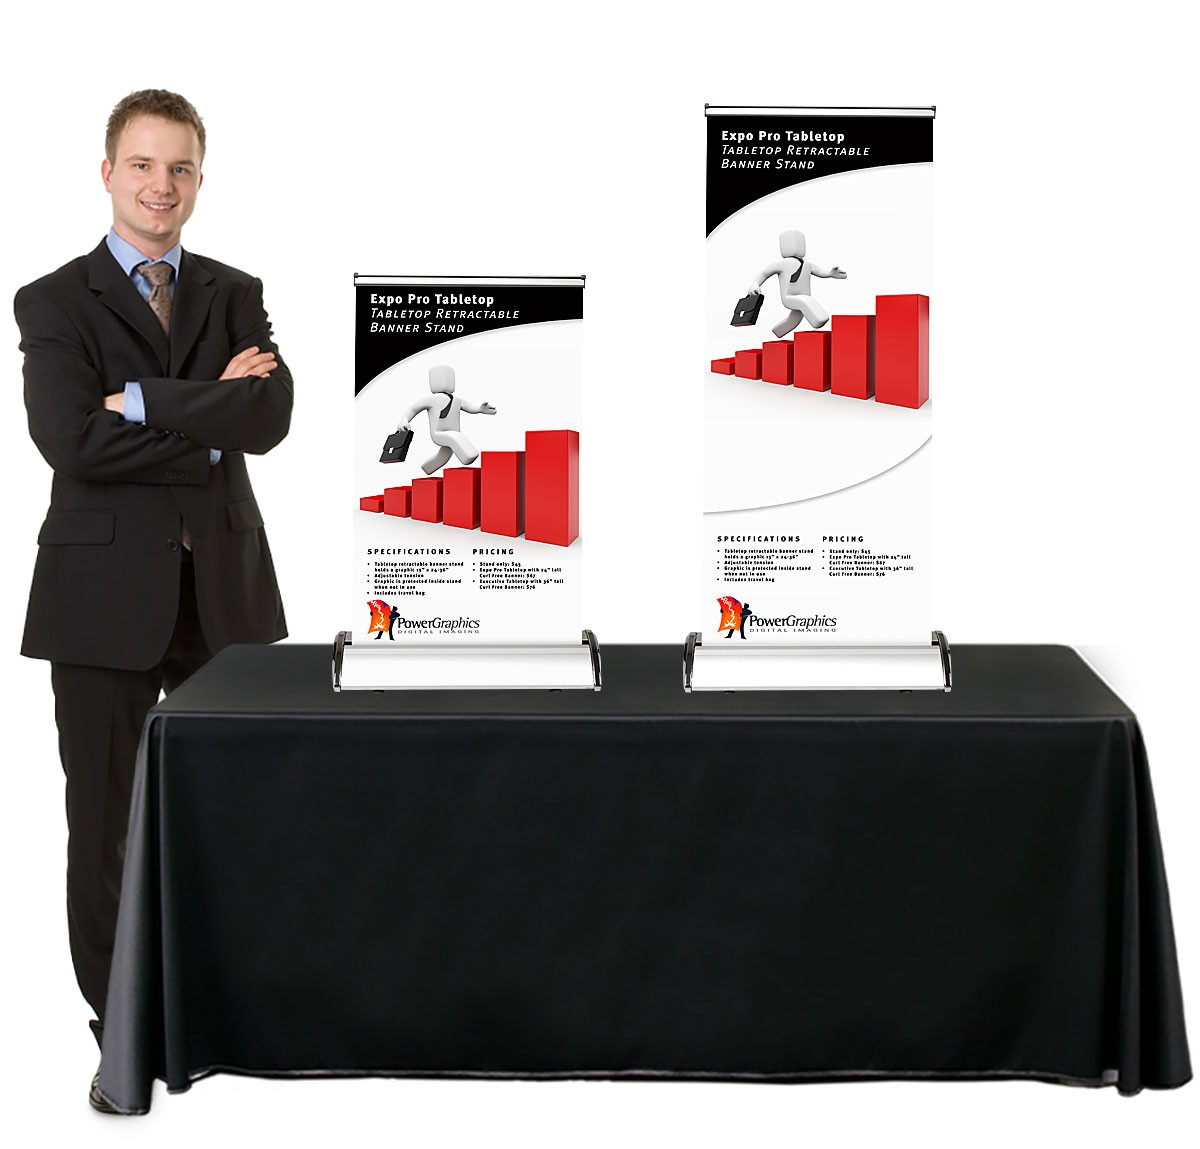 Expo Banner Stands : Expo pro table top retractable banner stand